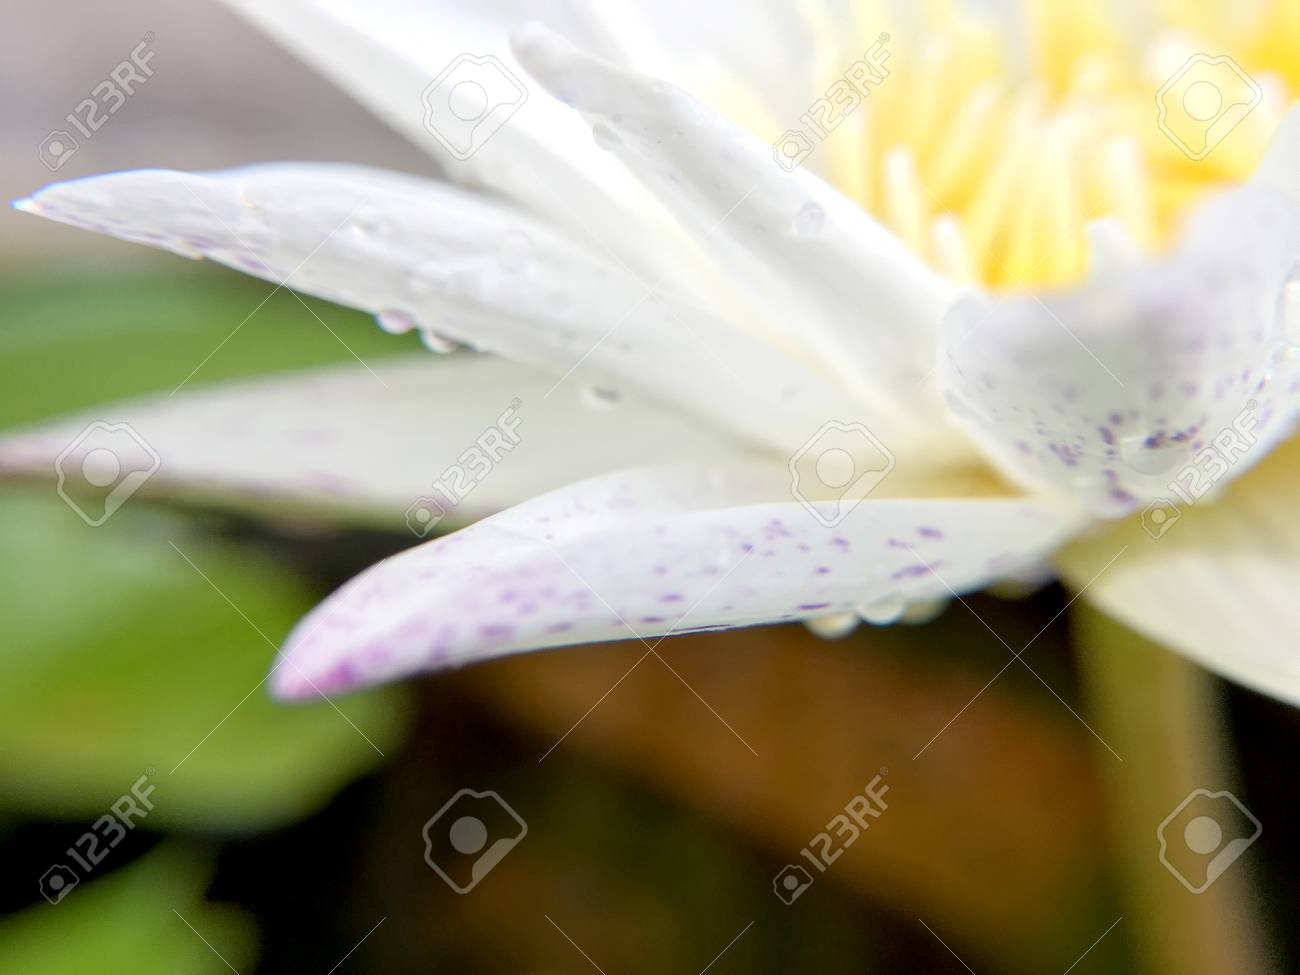 Beautiful White Lotus Flower With Water Droplets On The Petals